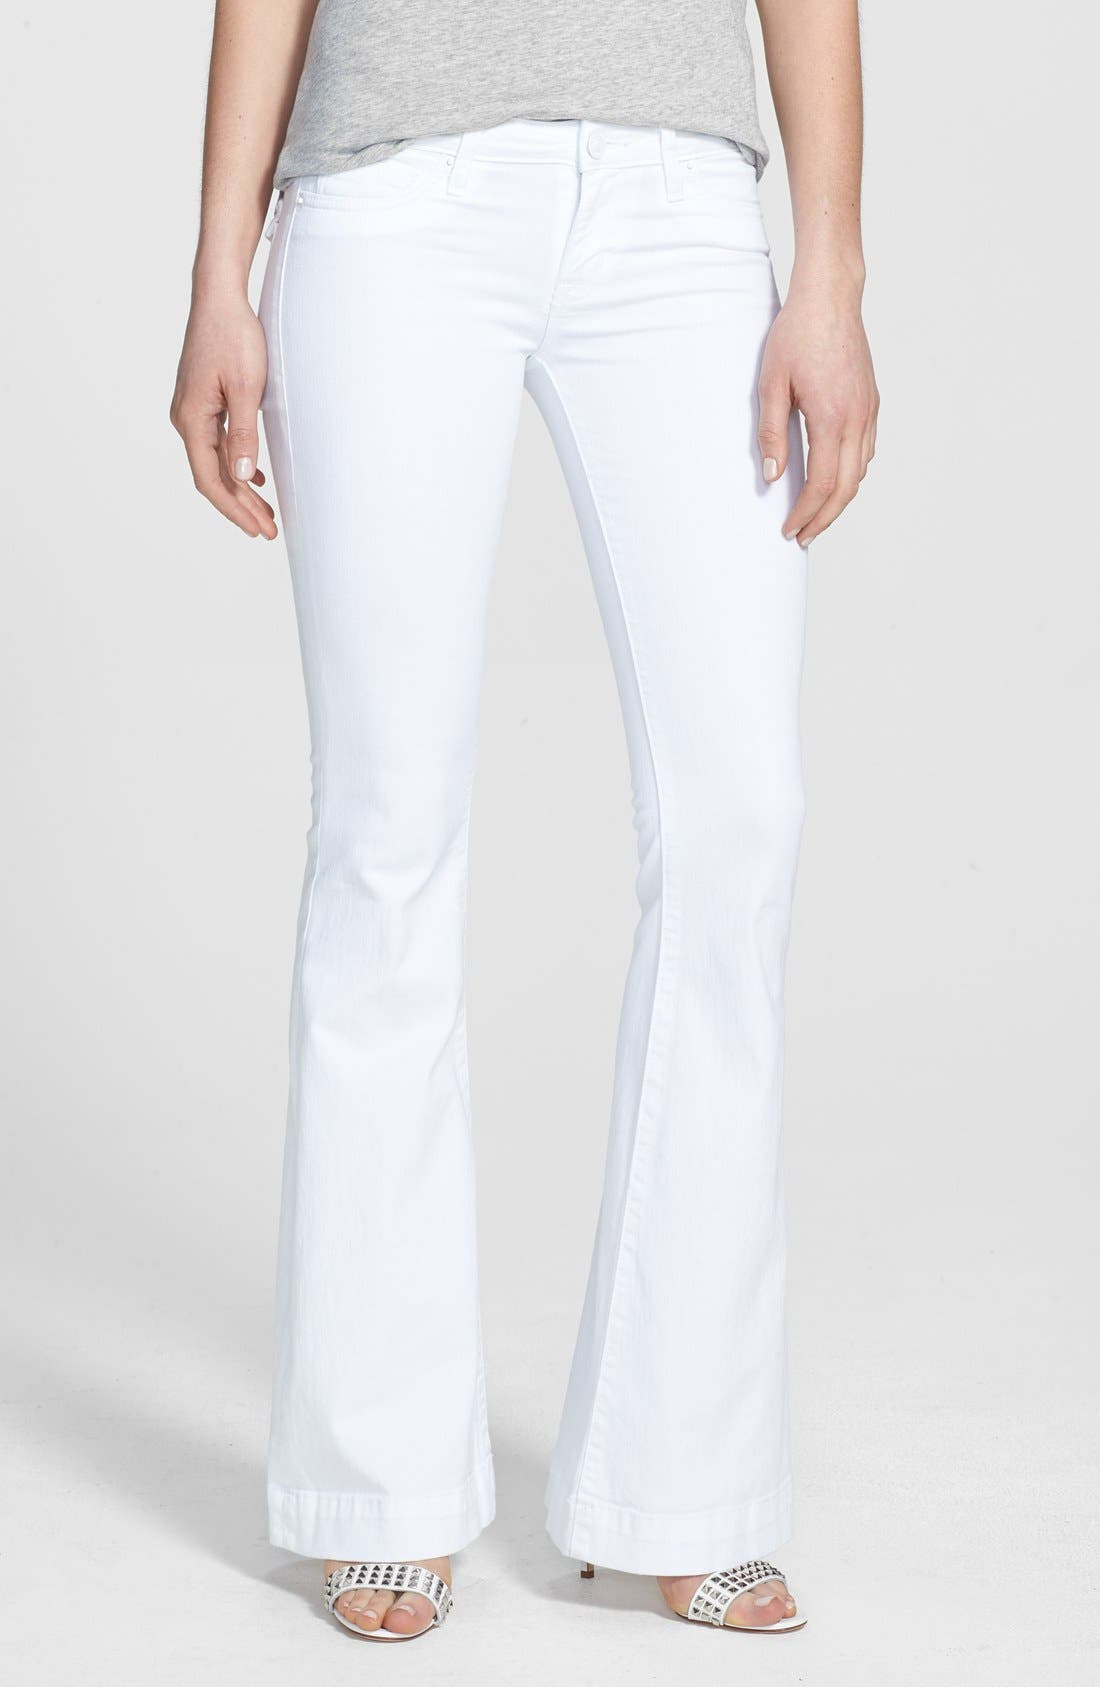 Main Image - Hudson Jeans 'Ferris' Flared Jeans (White)